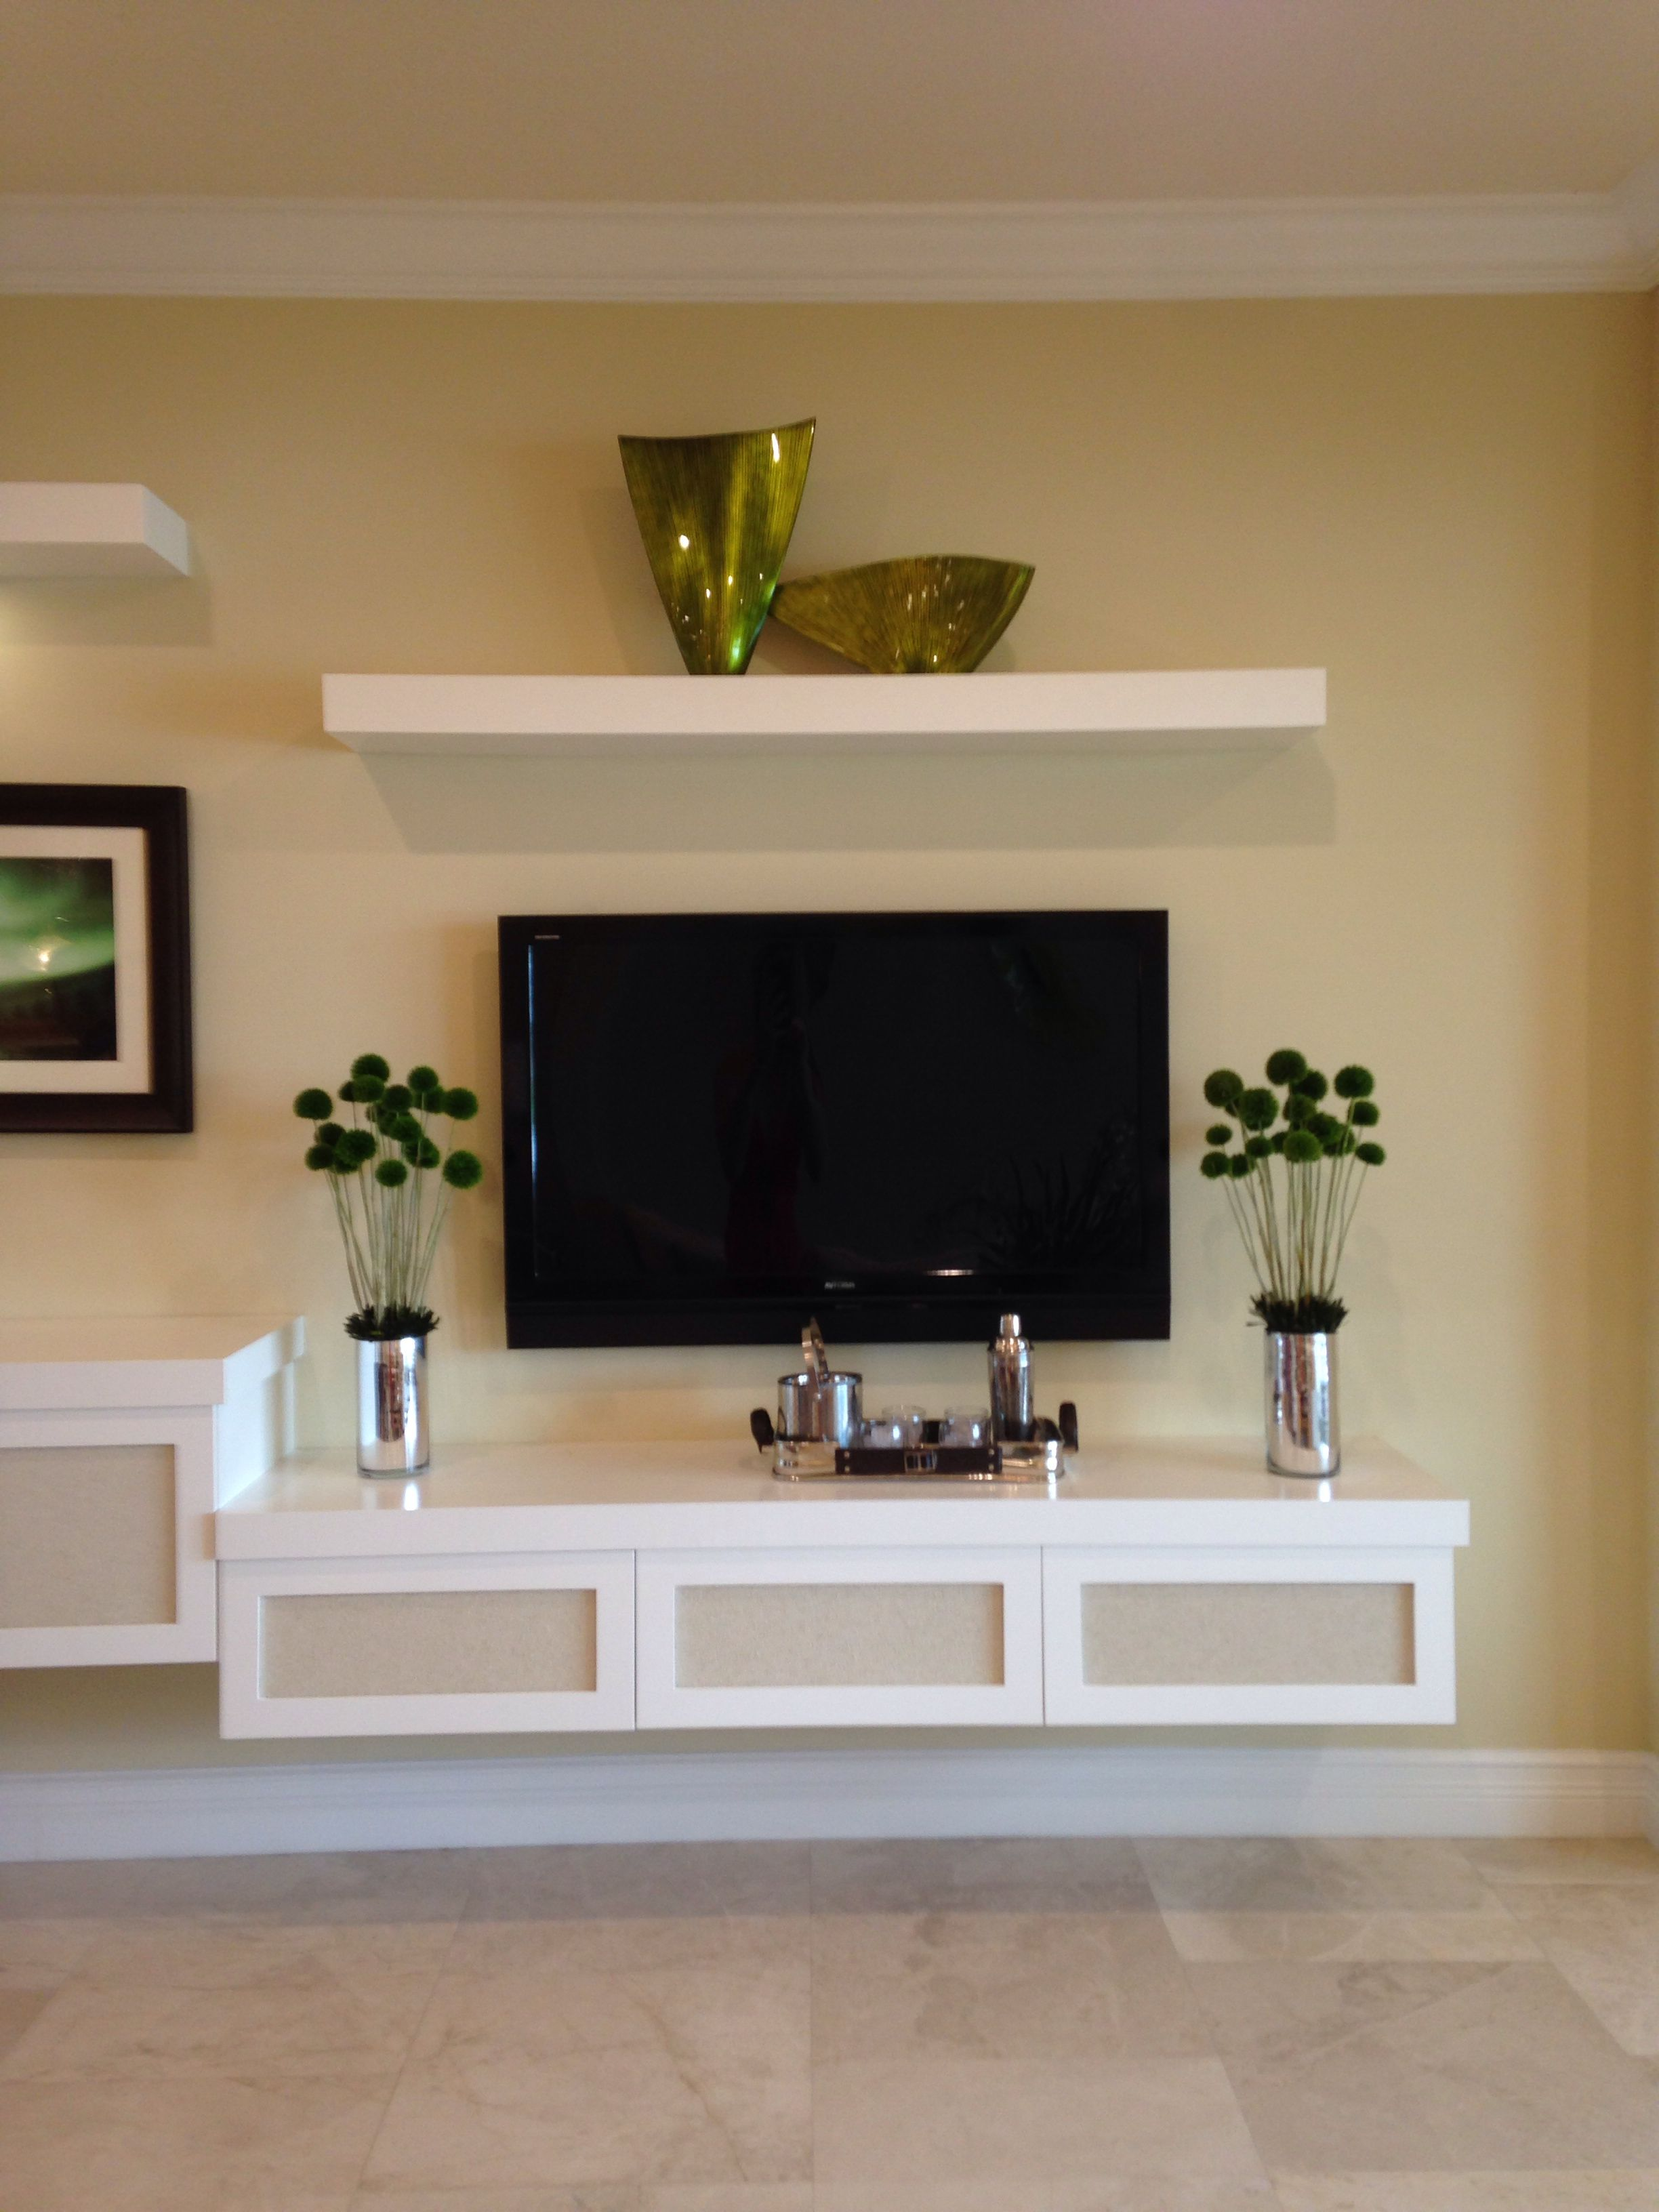 Tv Unit In Living Room: Pin On Home Ideas